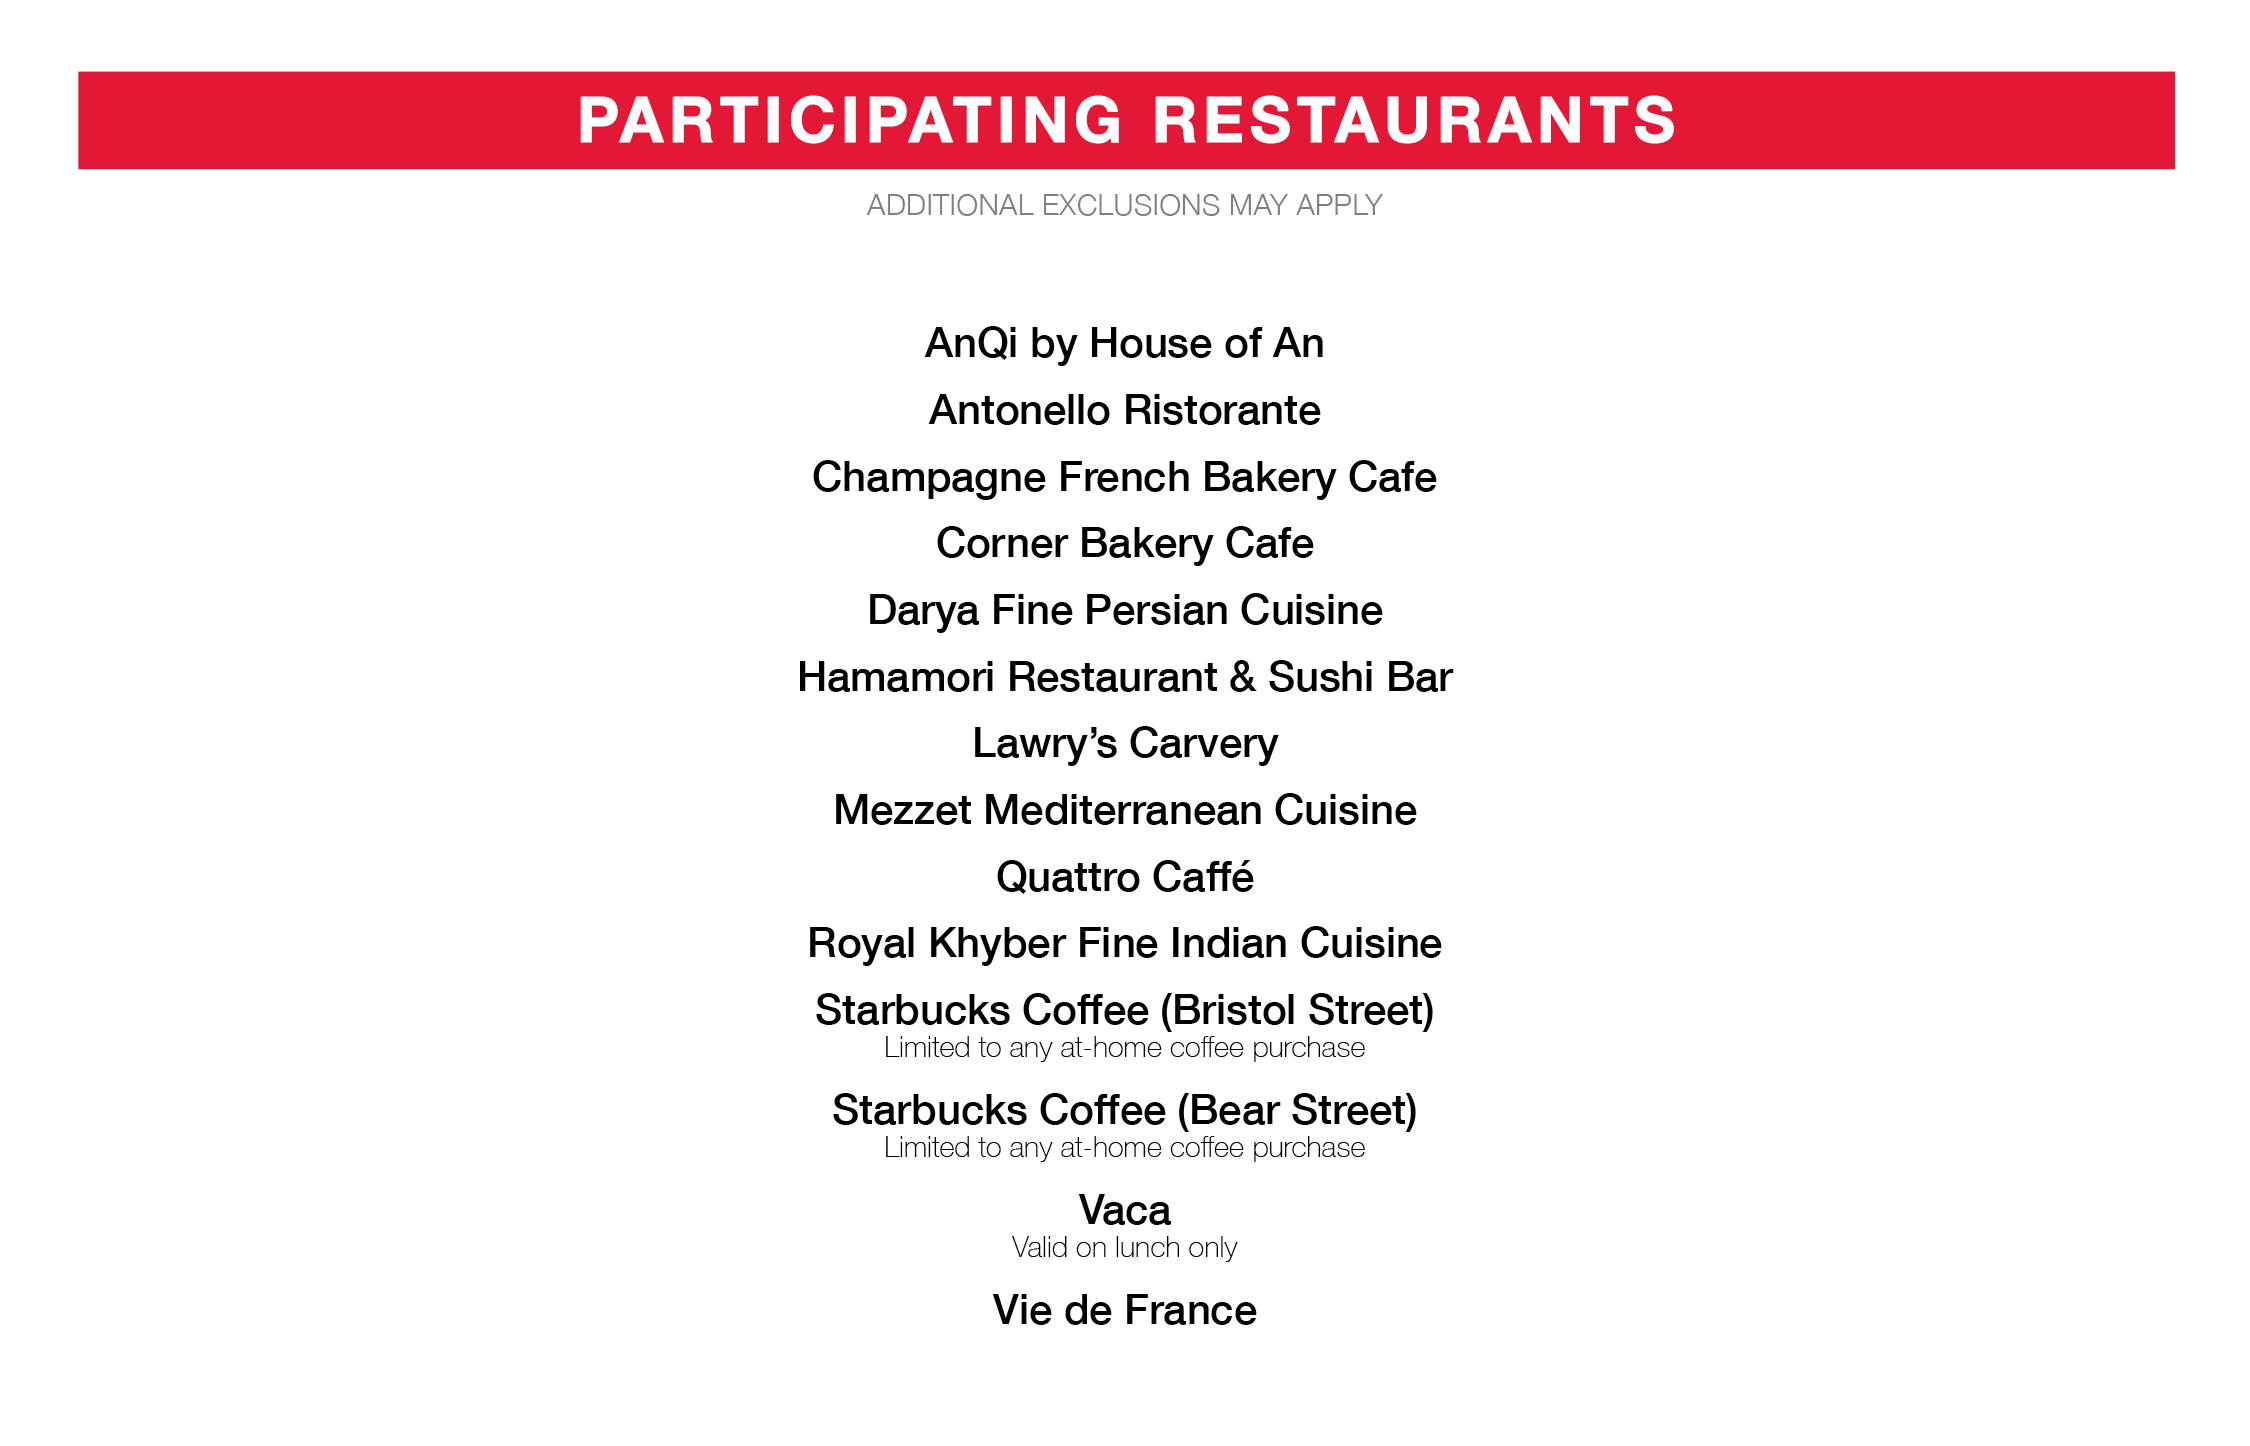 store-listing-digital-8-1-18-restaurants.png